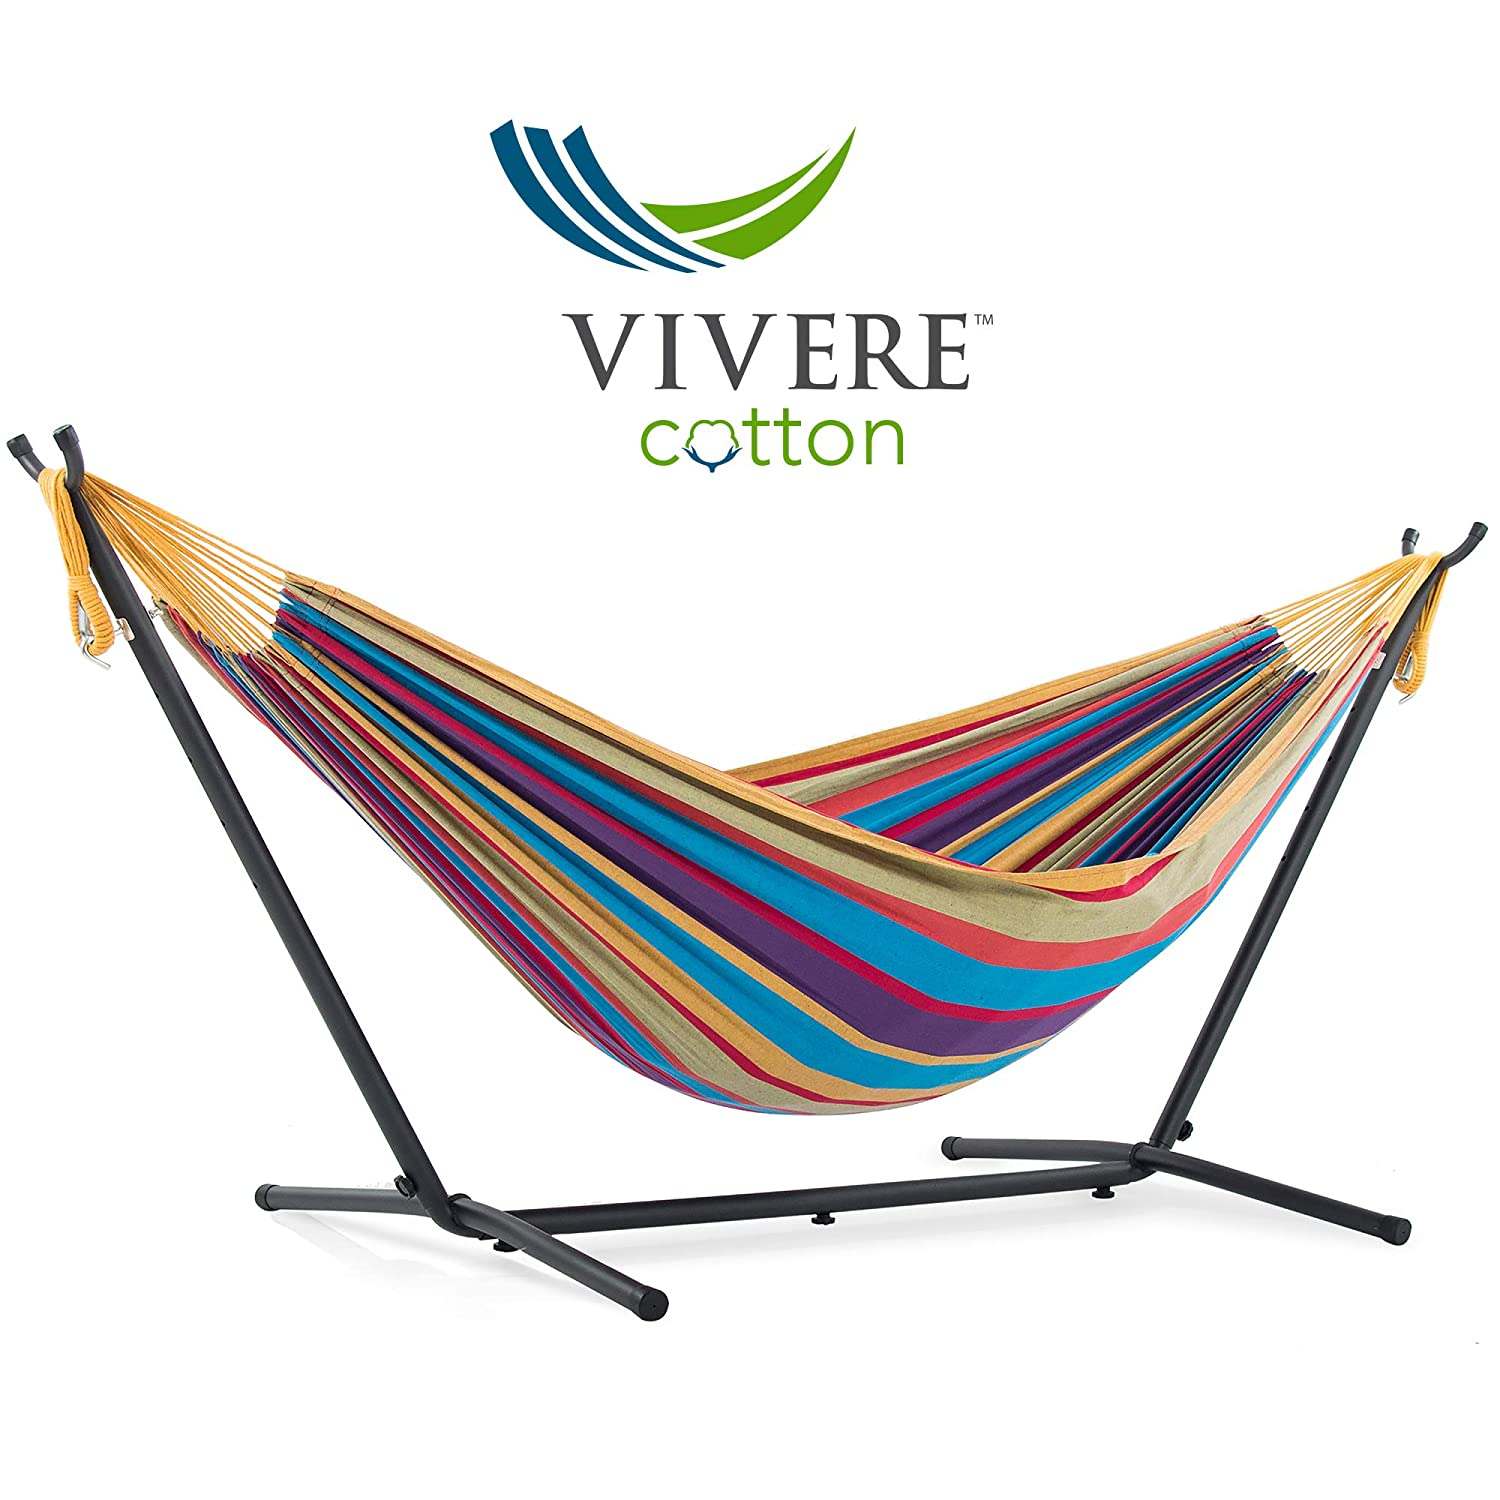 Vivere Double Cotton Hammock with Space Saving Steel Stand, Tropical 450 lb Capacity – Premium Carry Bag Included